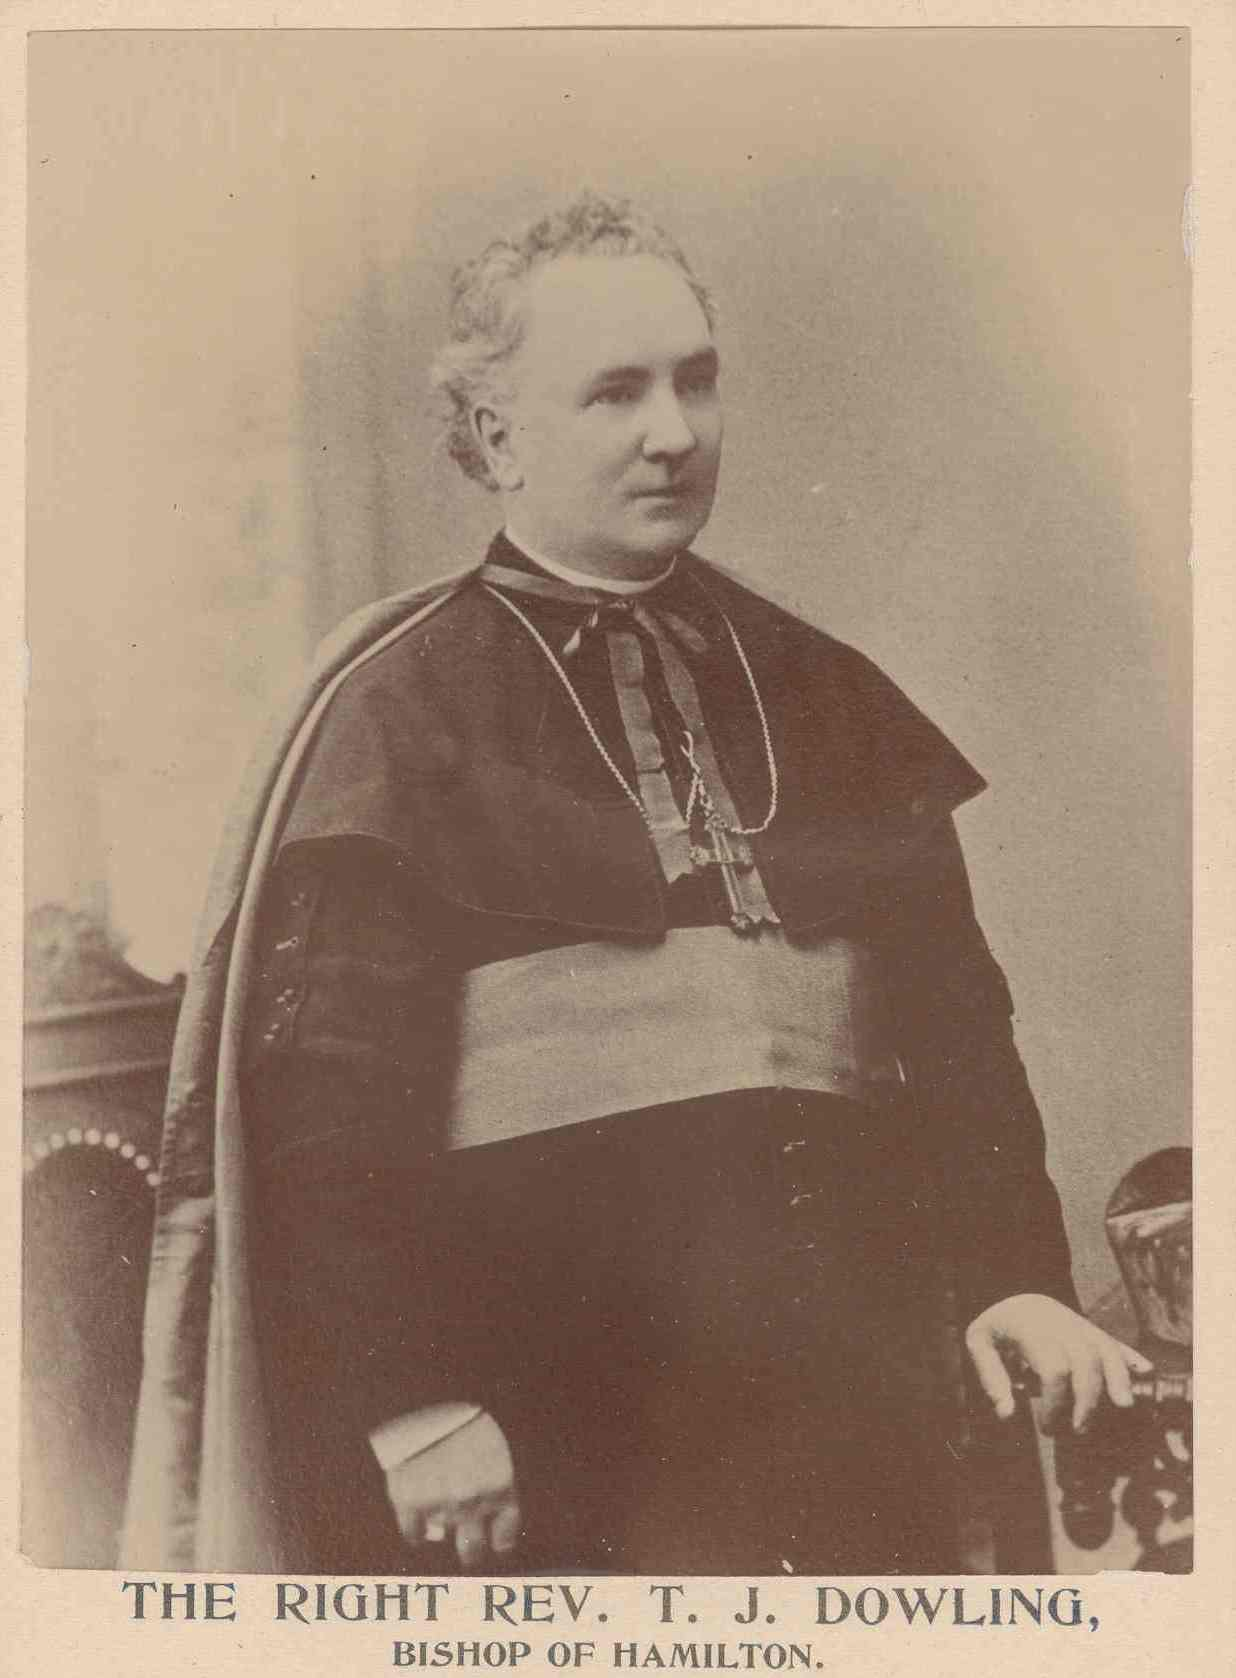 Bishop Thomas J. Dowling